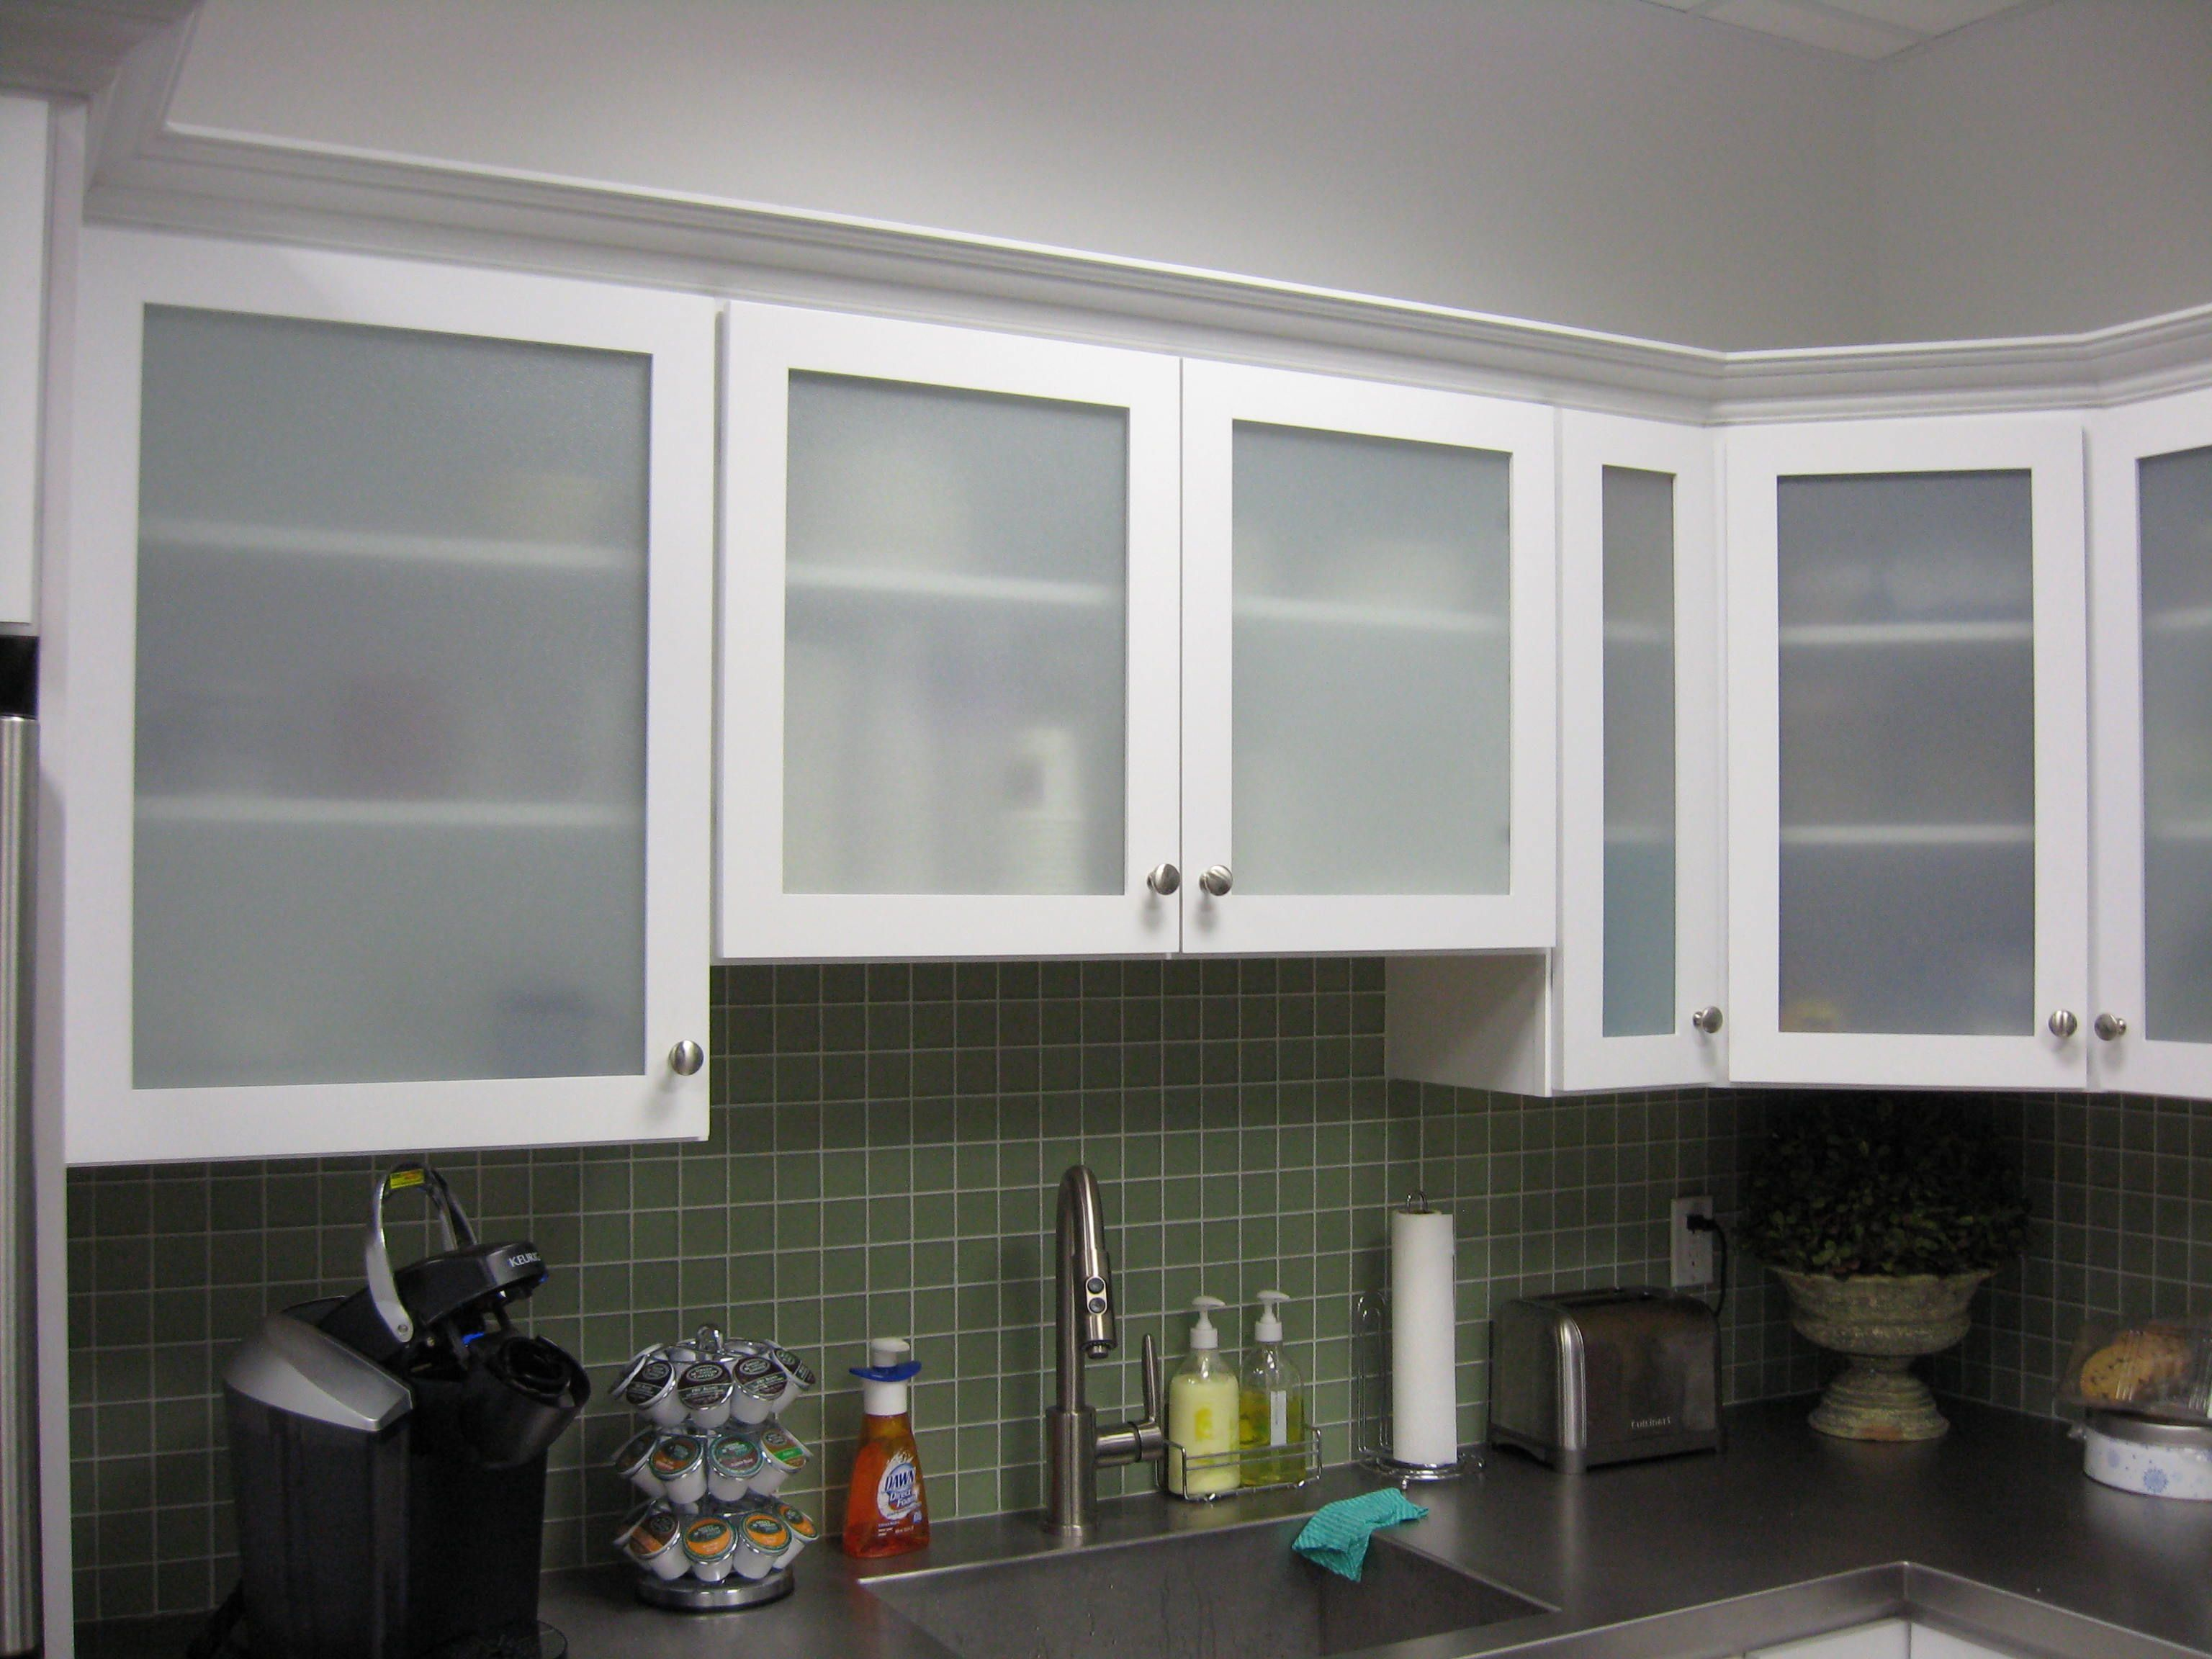 Frosted Glass Kitchen Cabinet Door Inserts In 2020 Glass Kitchen Cabinet Doors Glass Kitchen Cabinets Glass Fronted Kitchen Cabinets